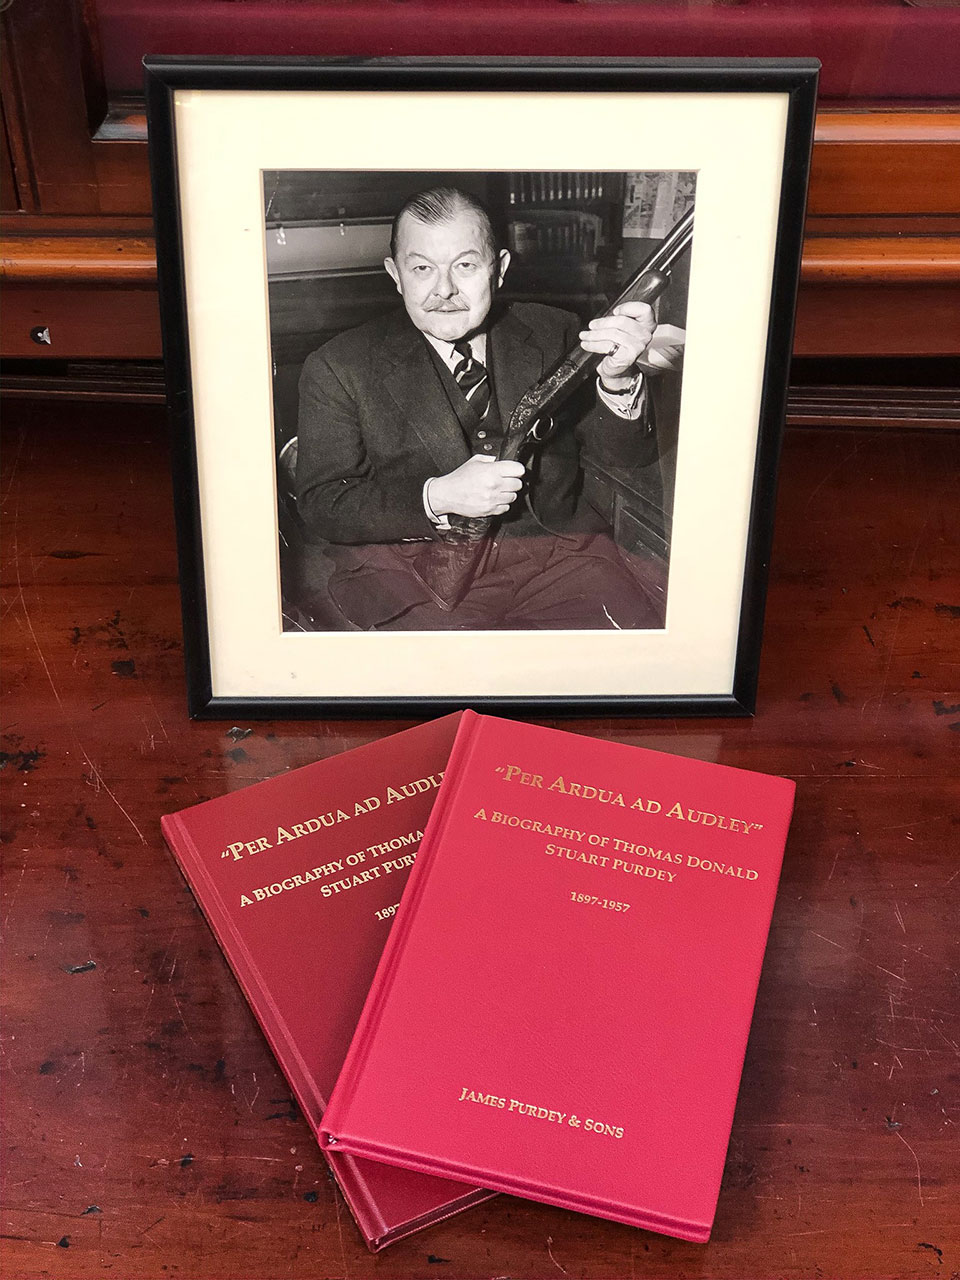 Tom Purdey's life has been thoroughly researched and celebrated in Nick Harlow's new book.